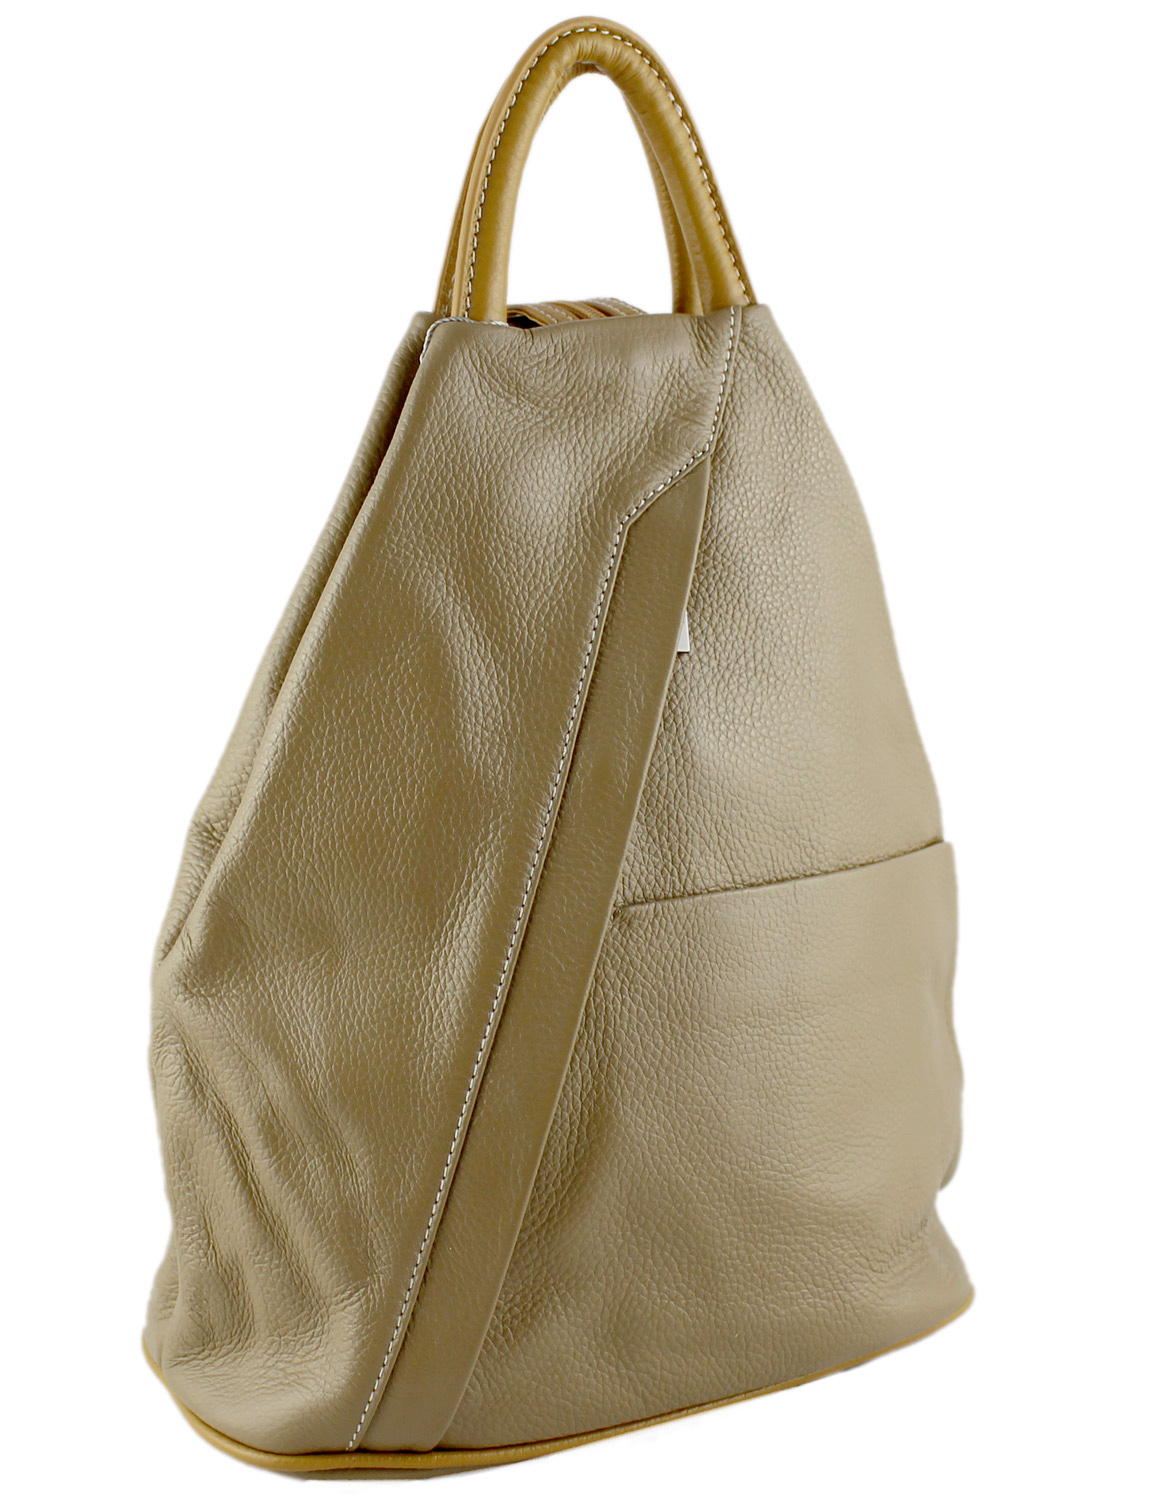 Tuscany Soft Leather Backpack in Beige with Caramel Trim